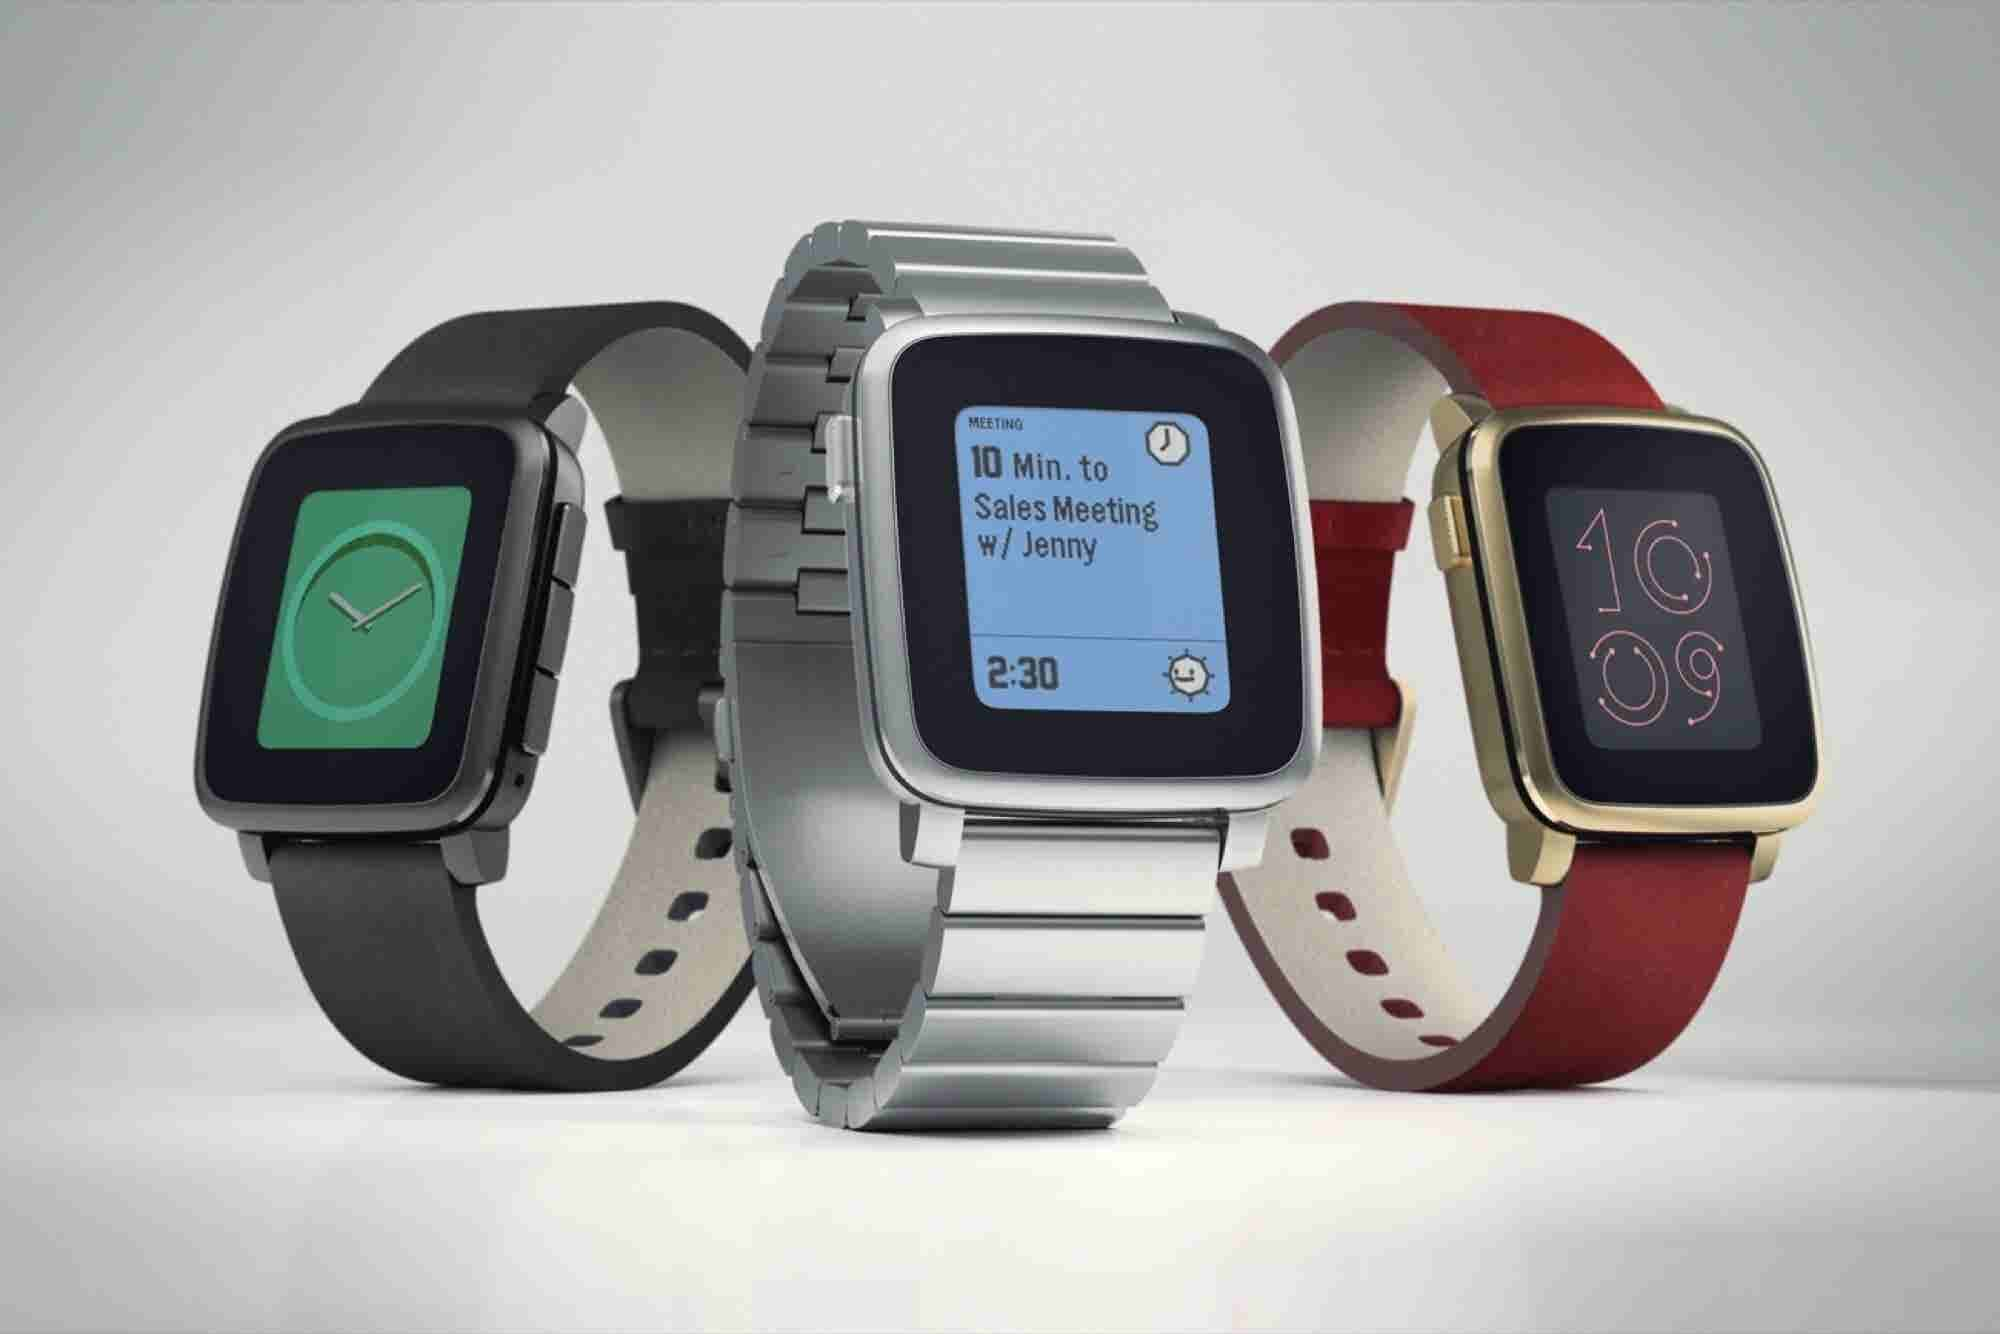 Smartwatch Maker Pebble Lays Off Quarter of Staff